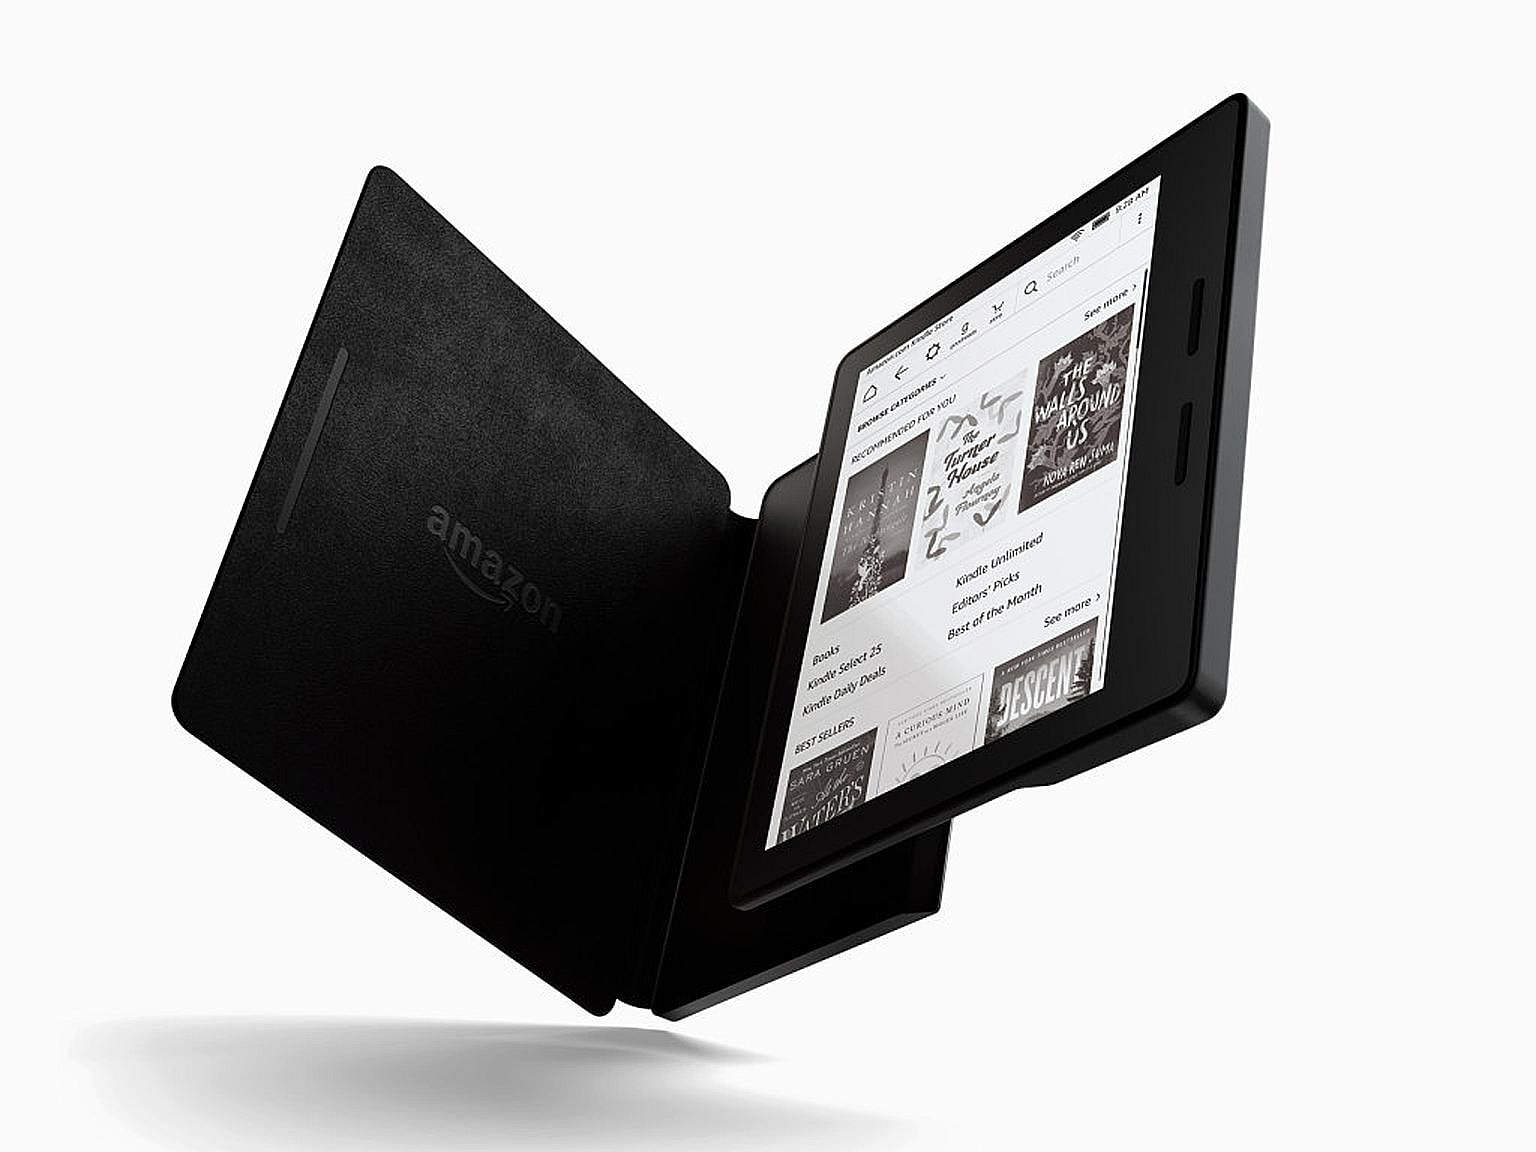 Its price tag of US$289.99 makes the Kindle Oasis the most expensive e-reader in the market.